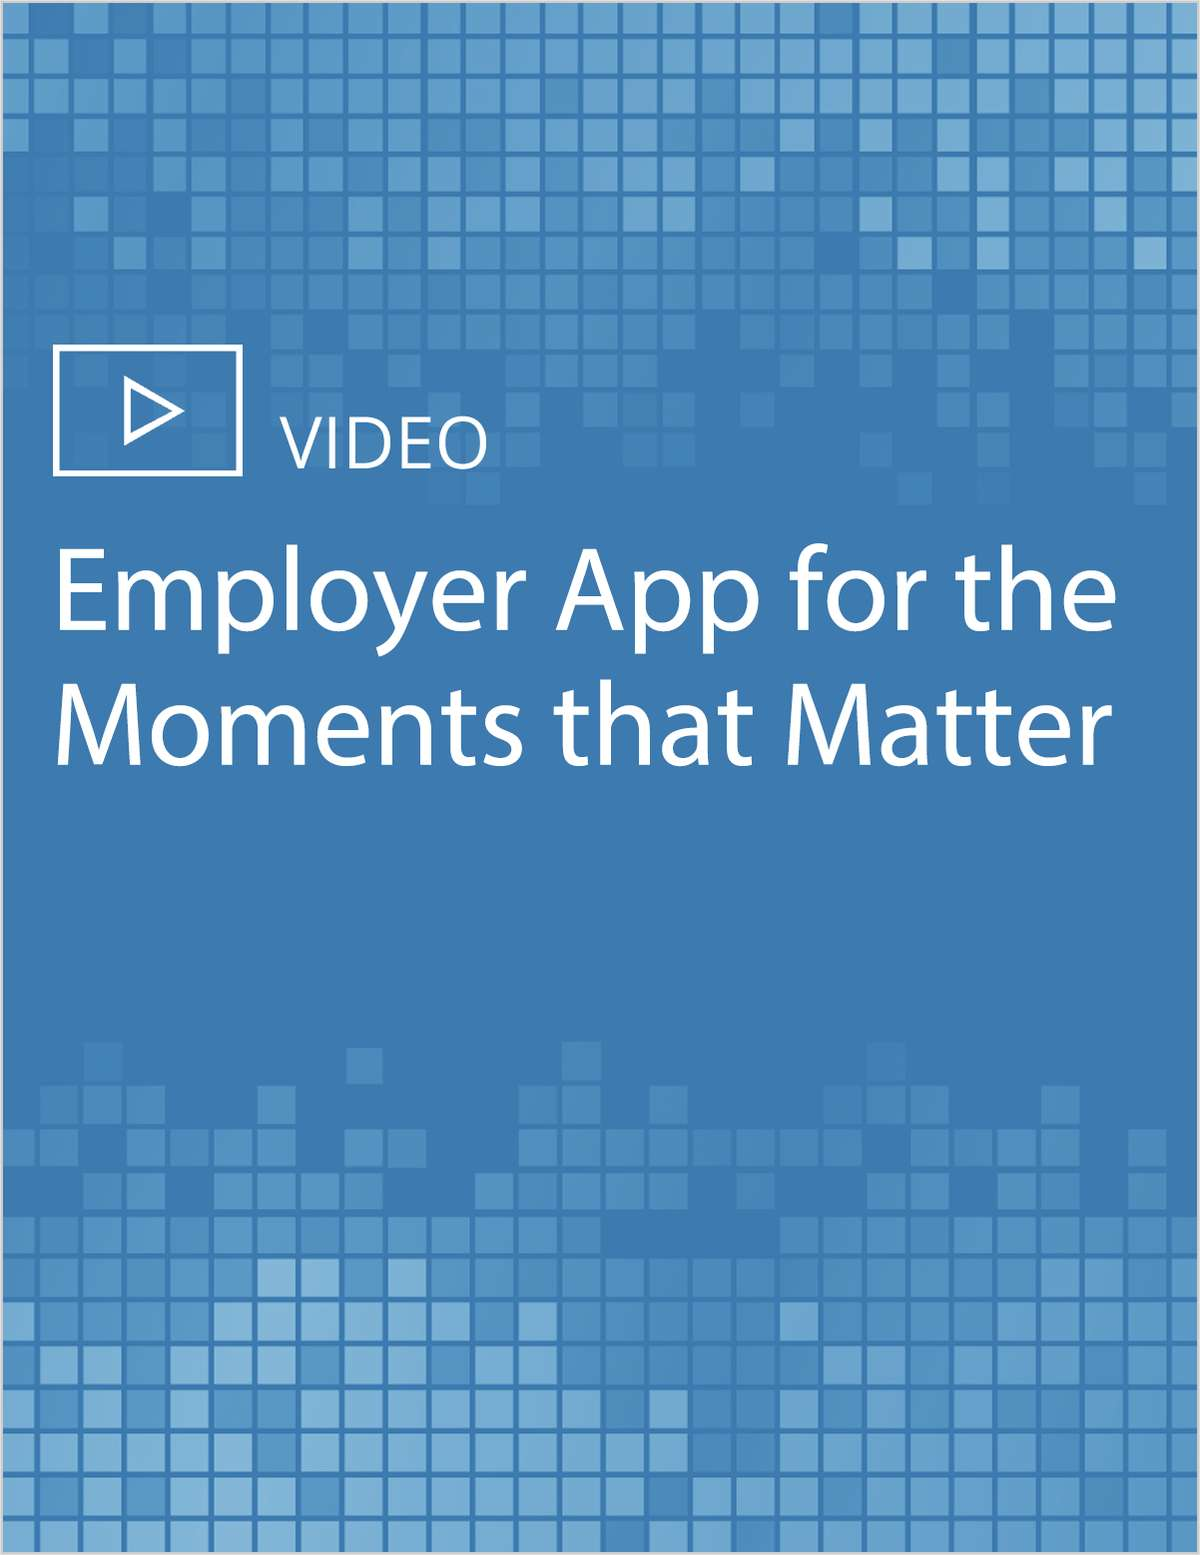 Employer App for the Moments that Matter